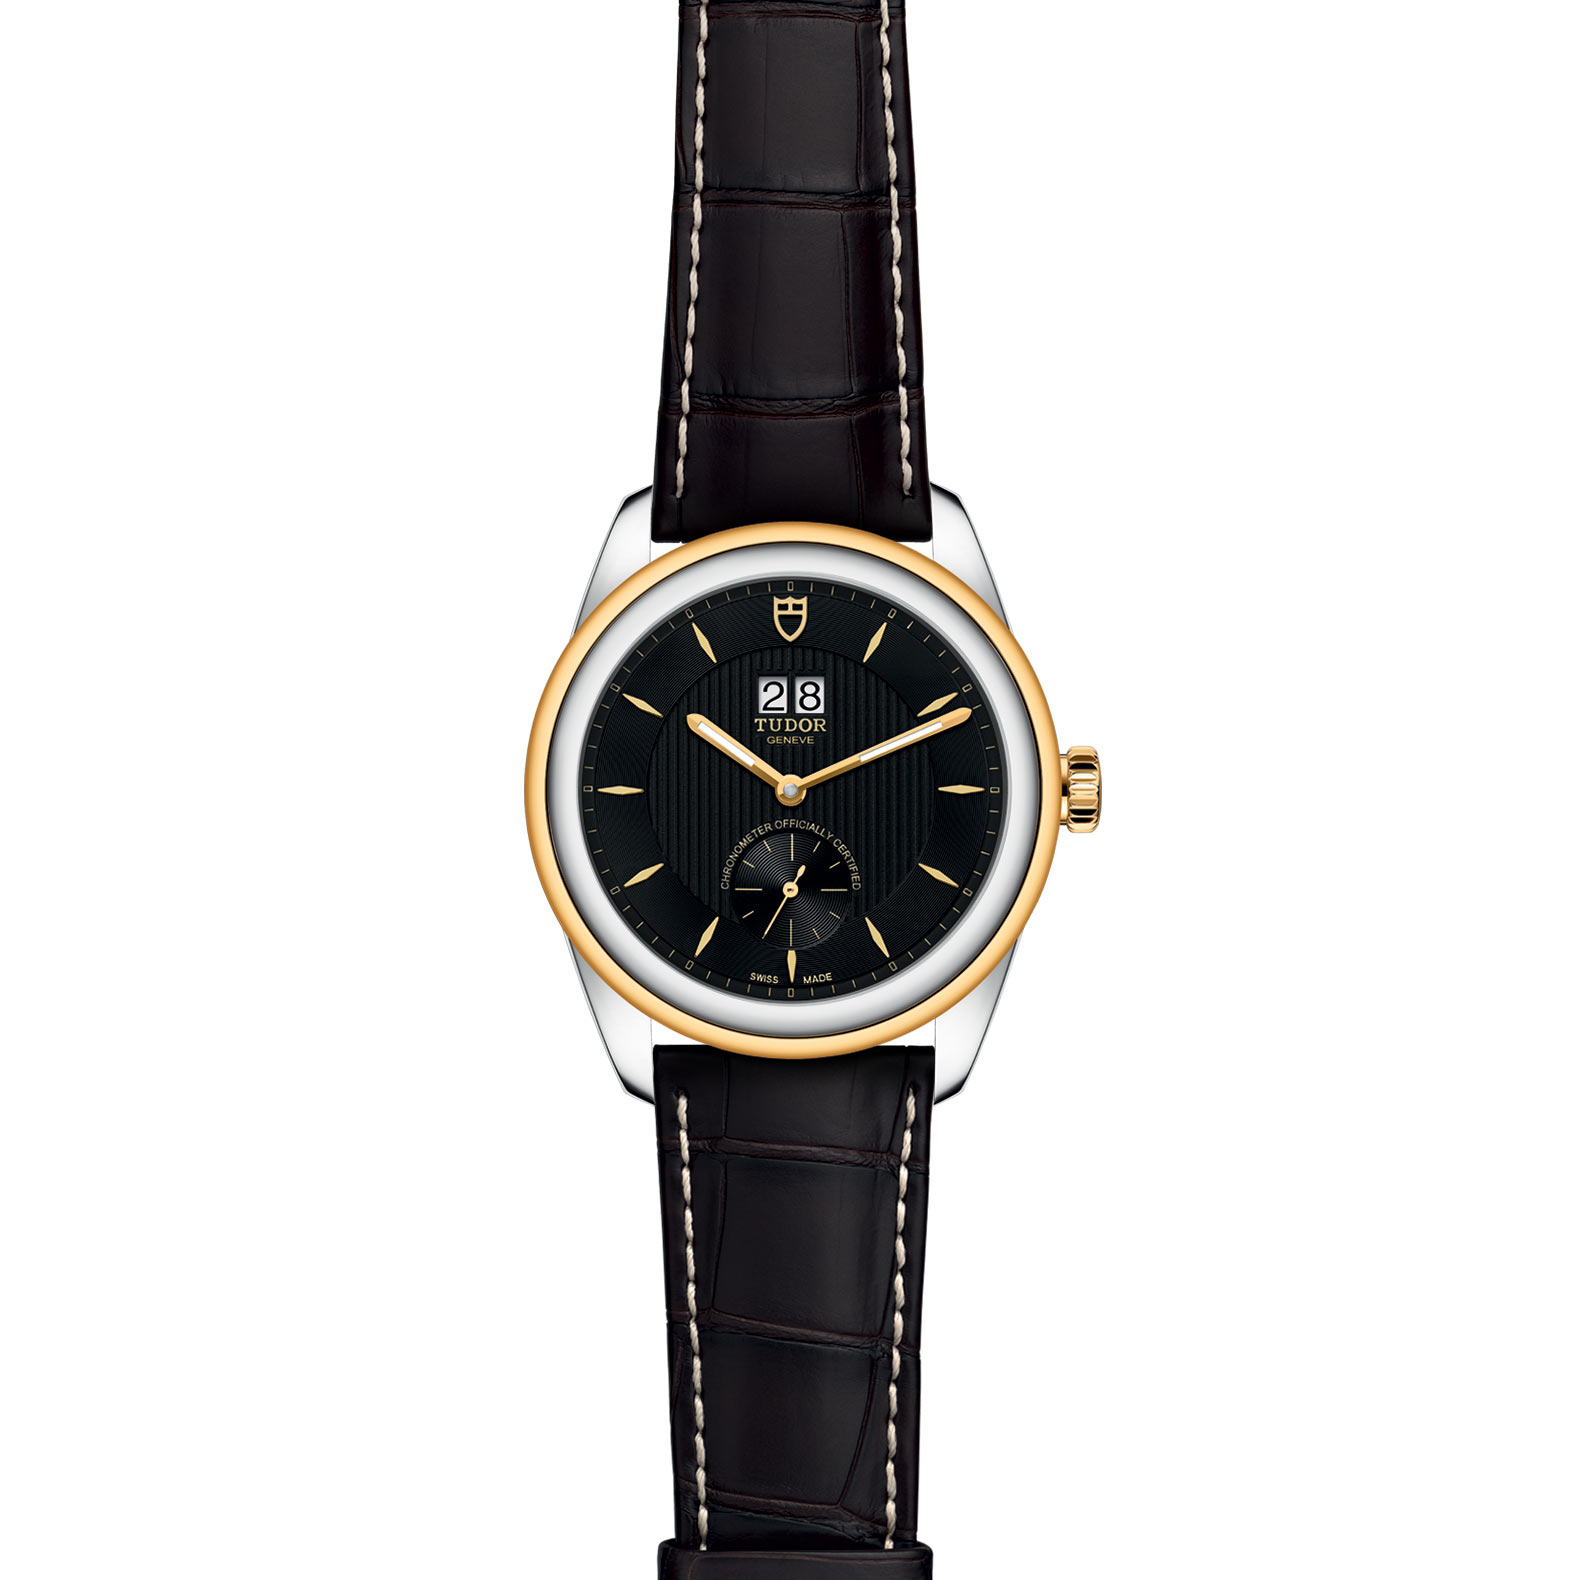 TUDOR Glamour Double Date M57103 0020 Frontfacing